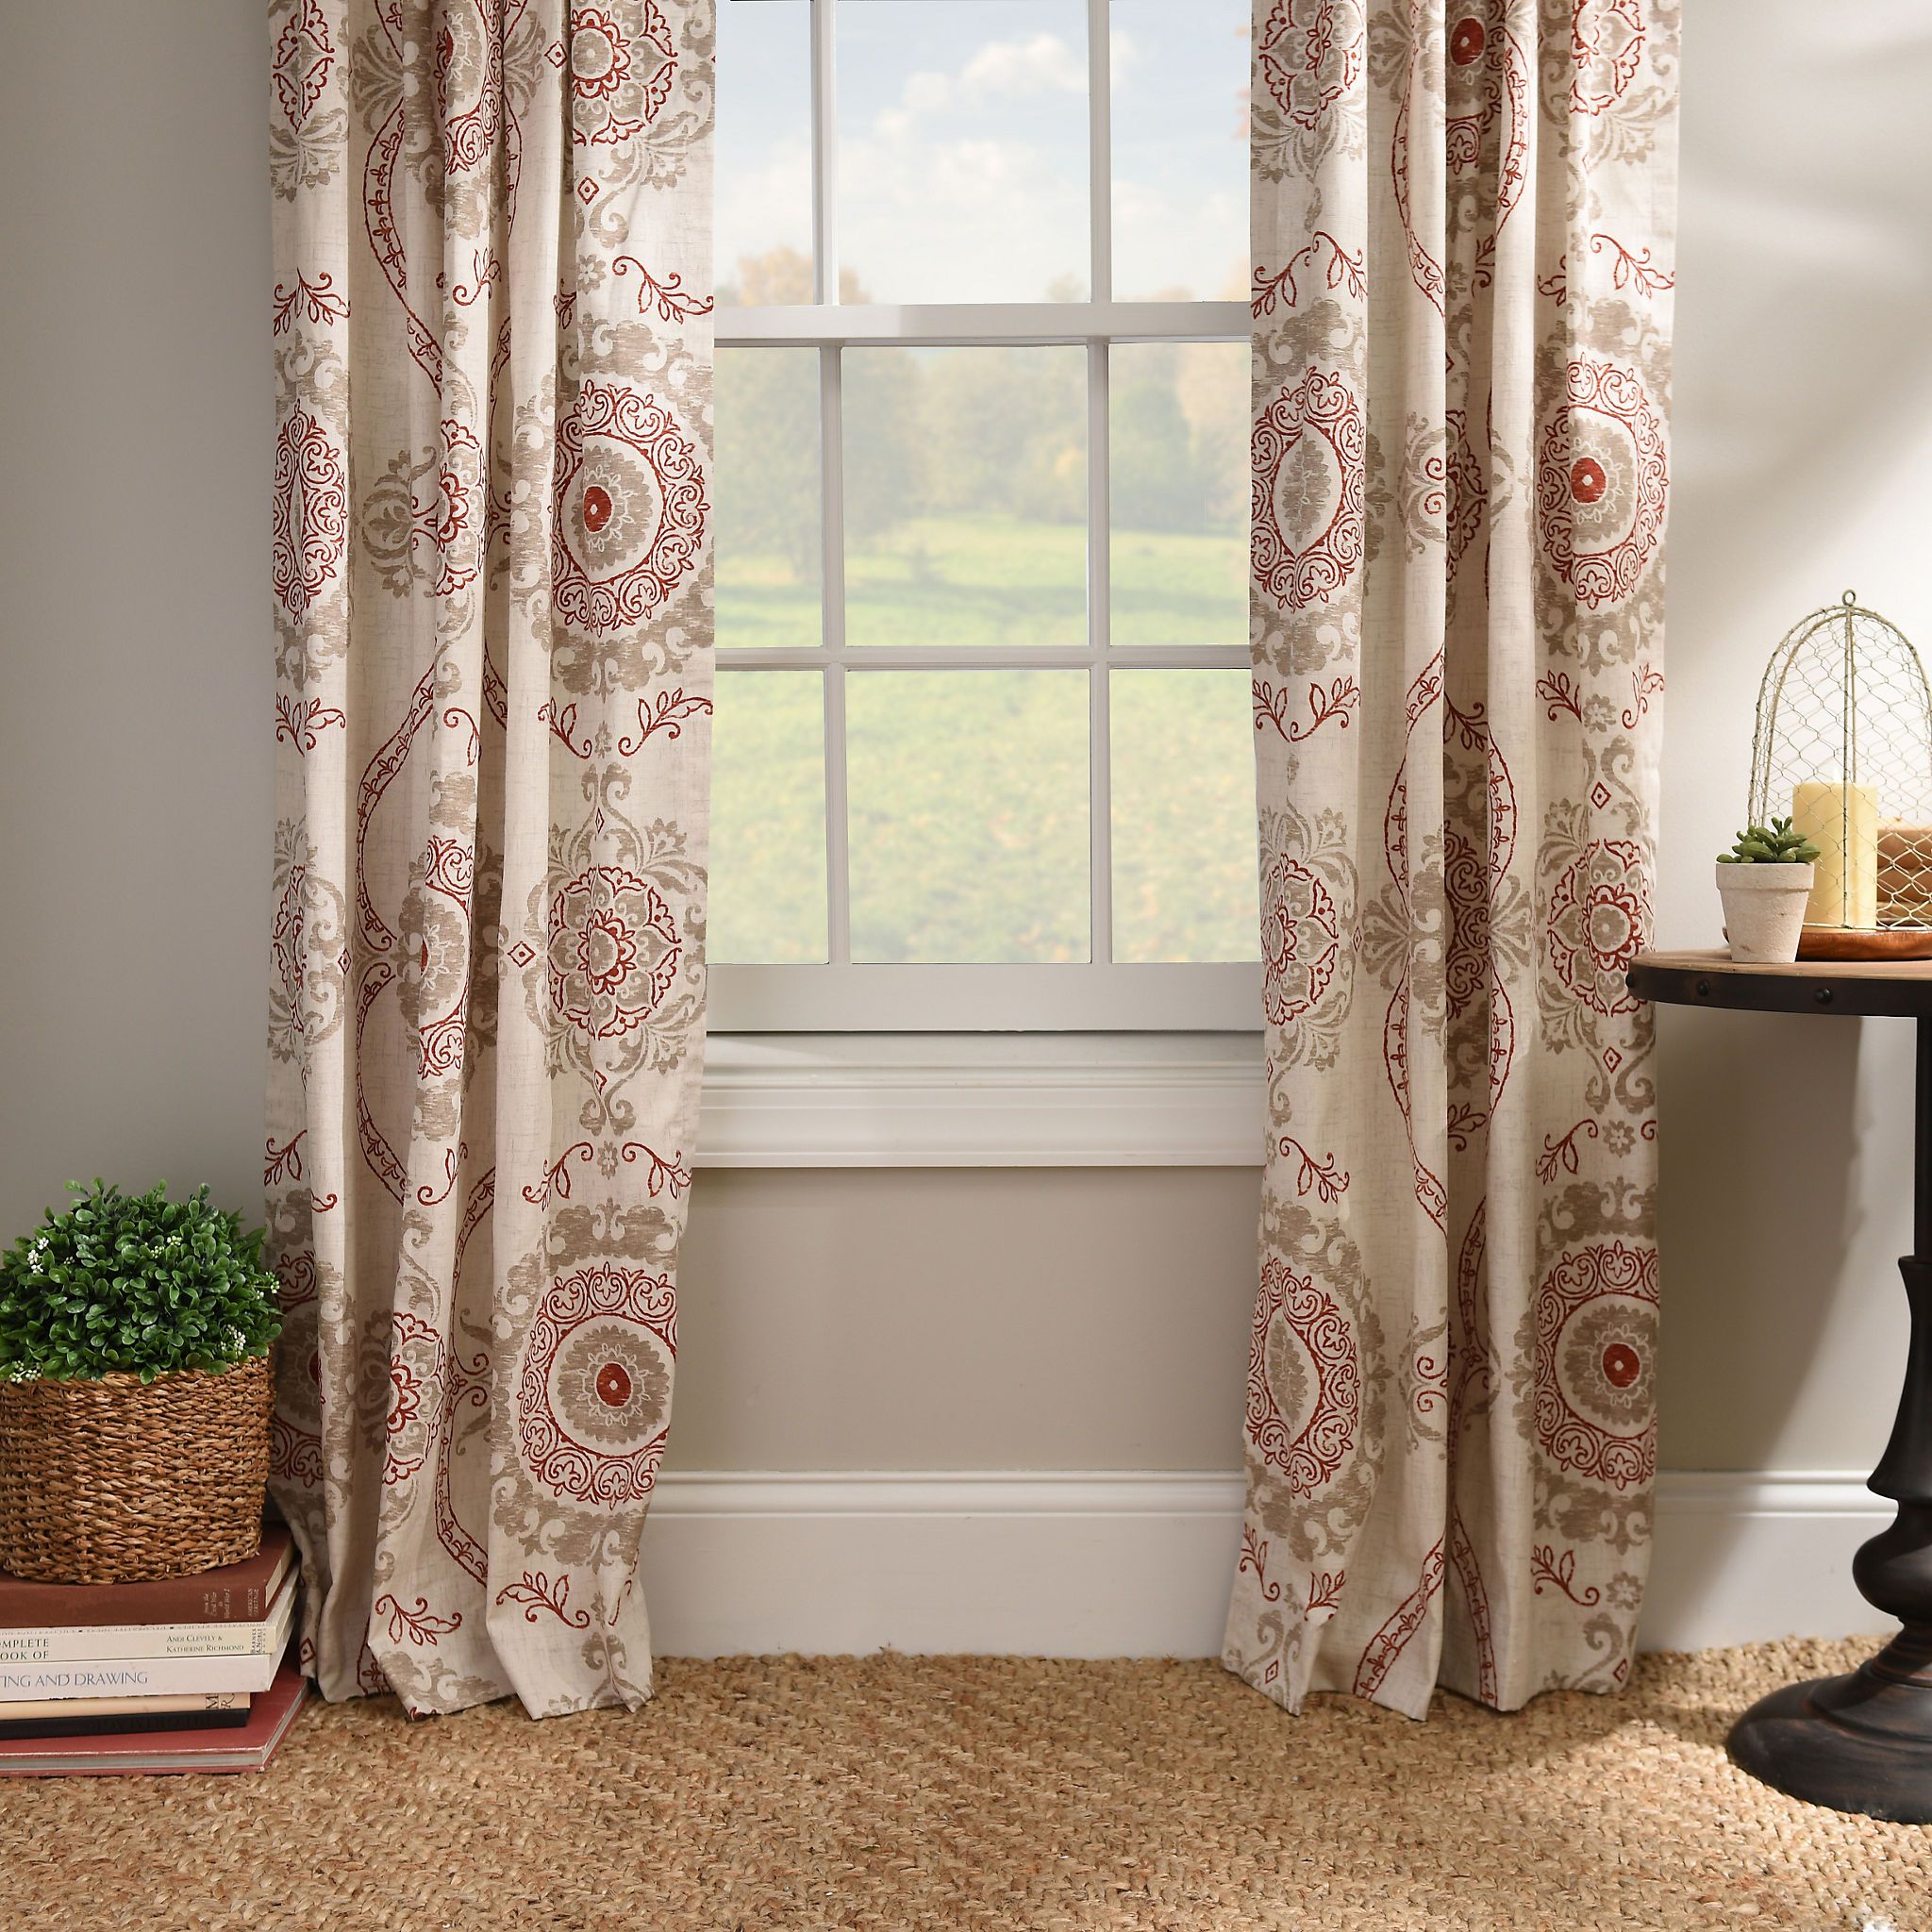 Spice Loretta Curtain Panel Set 96 in Curtain PanelsCurtainsLaundry RoomsFamily